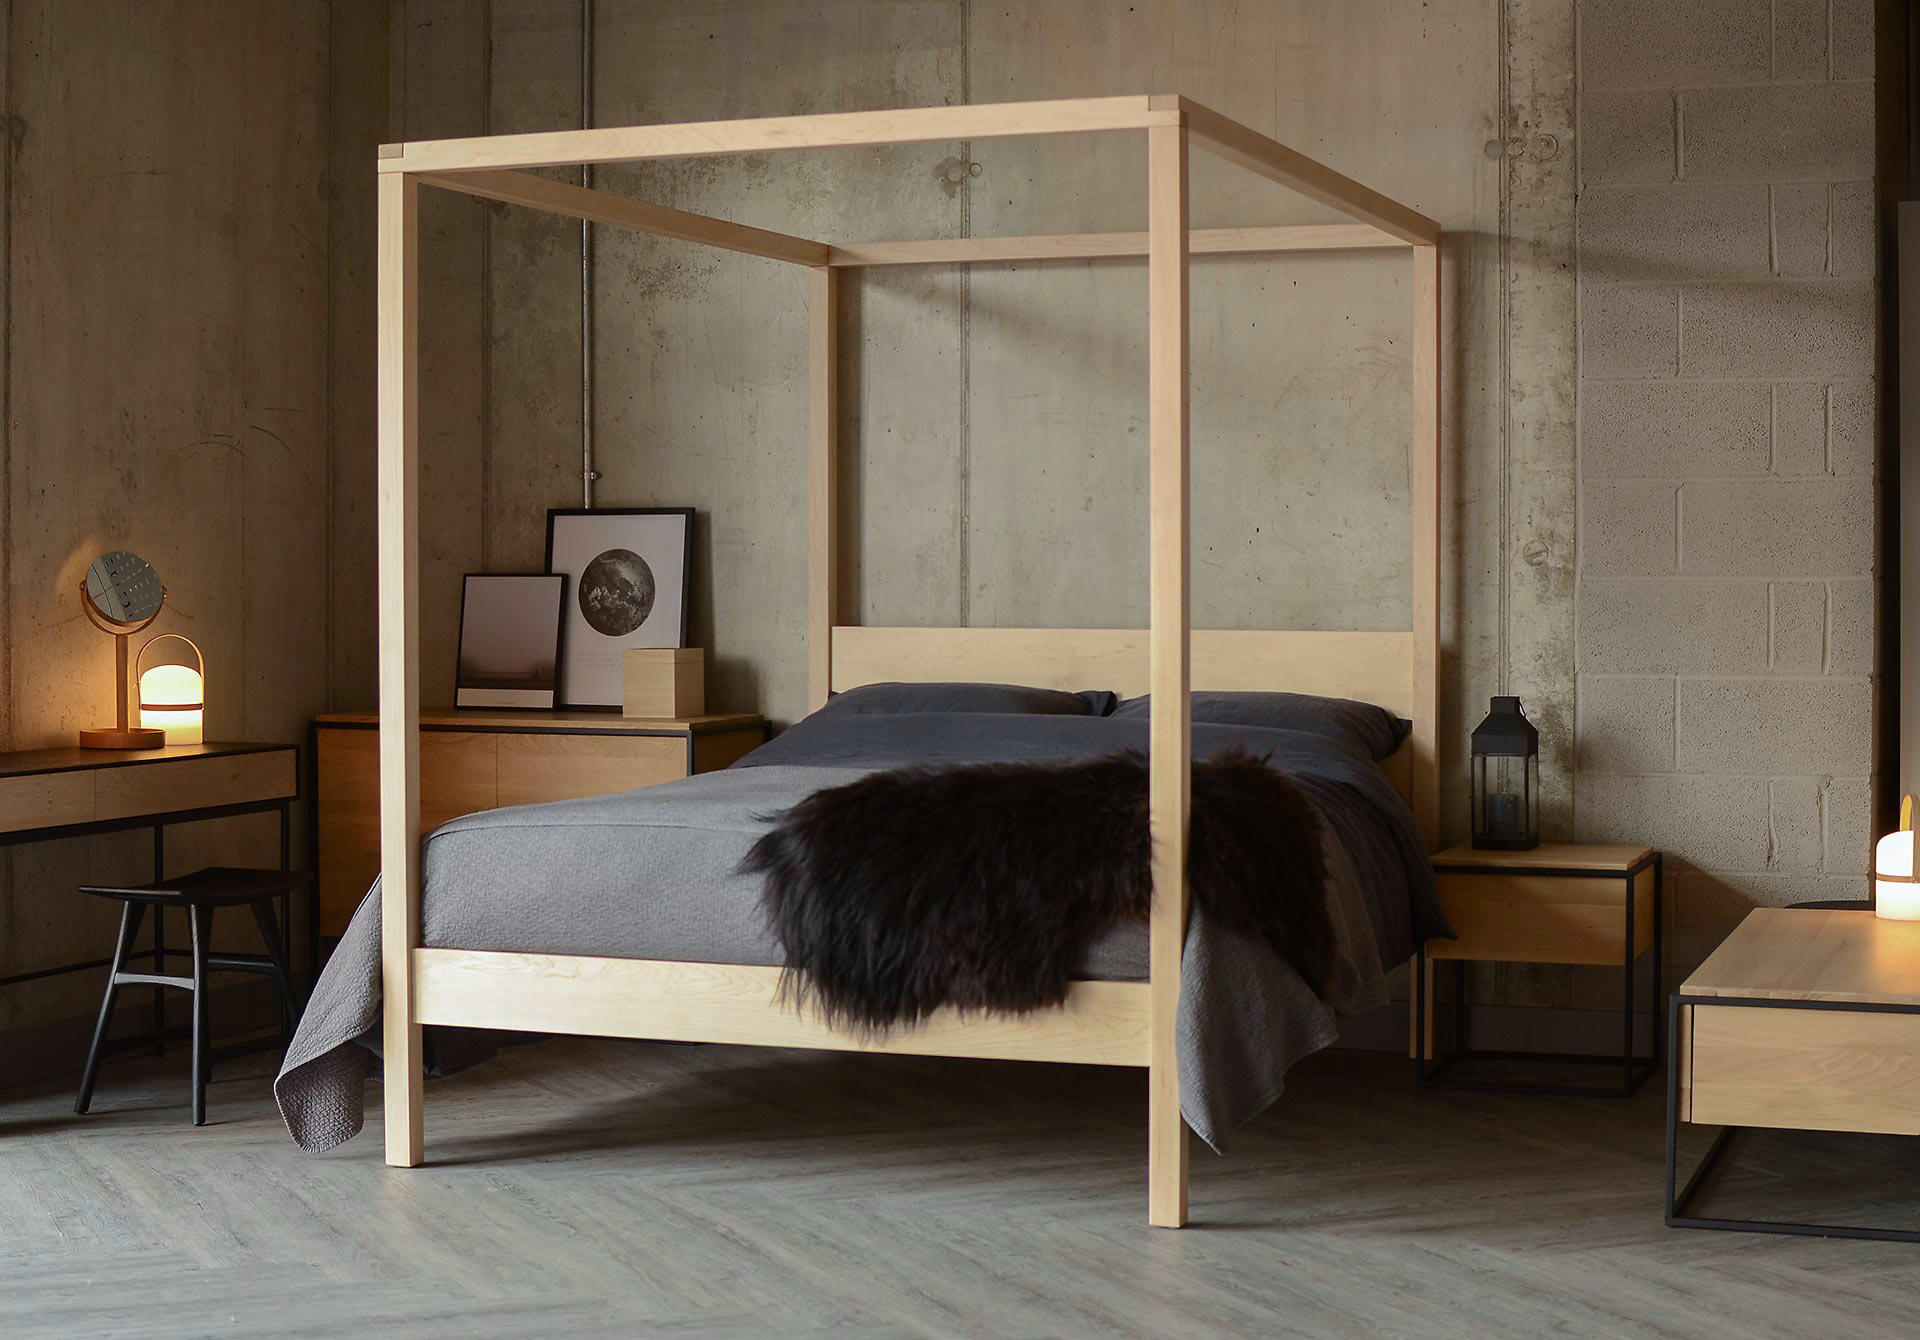 For a Scandinavian Bedroom look our solid wooden Orchid 4 poster bed is shown here in Maple